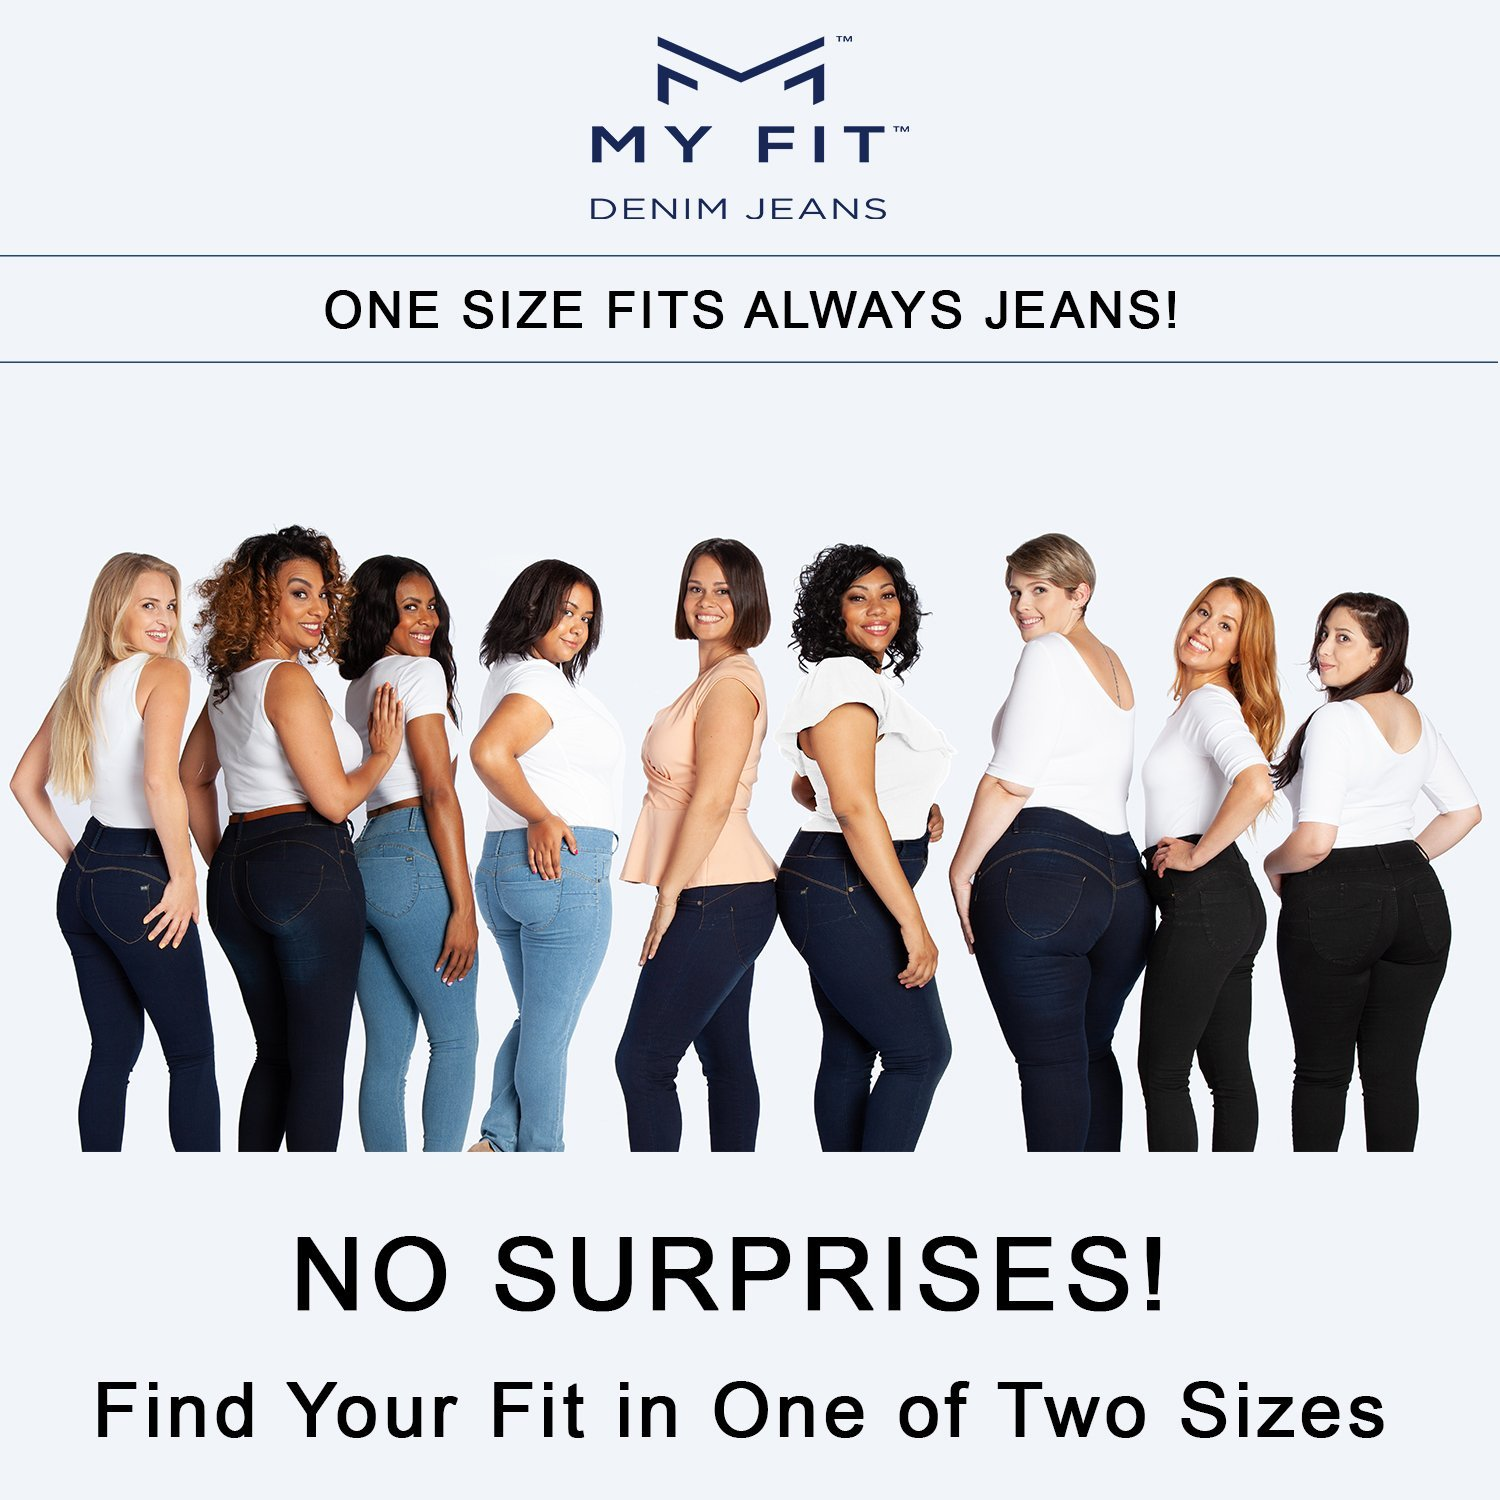 My Fit Jeans SIZE 14-20 LIGHT WASH Womens Stretch Denim Jeans with Pockets and the Comfort of Leggings Petite through Plus Size